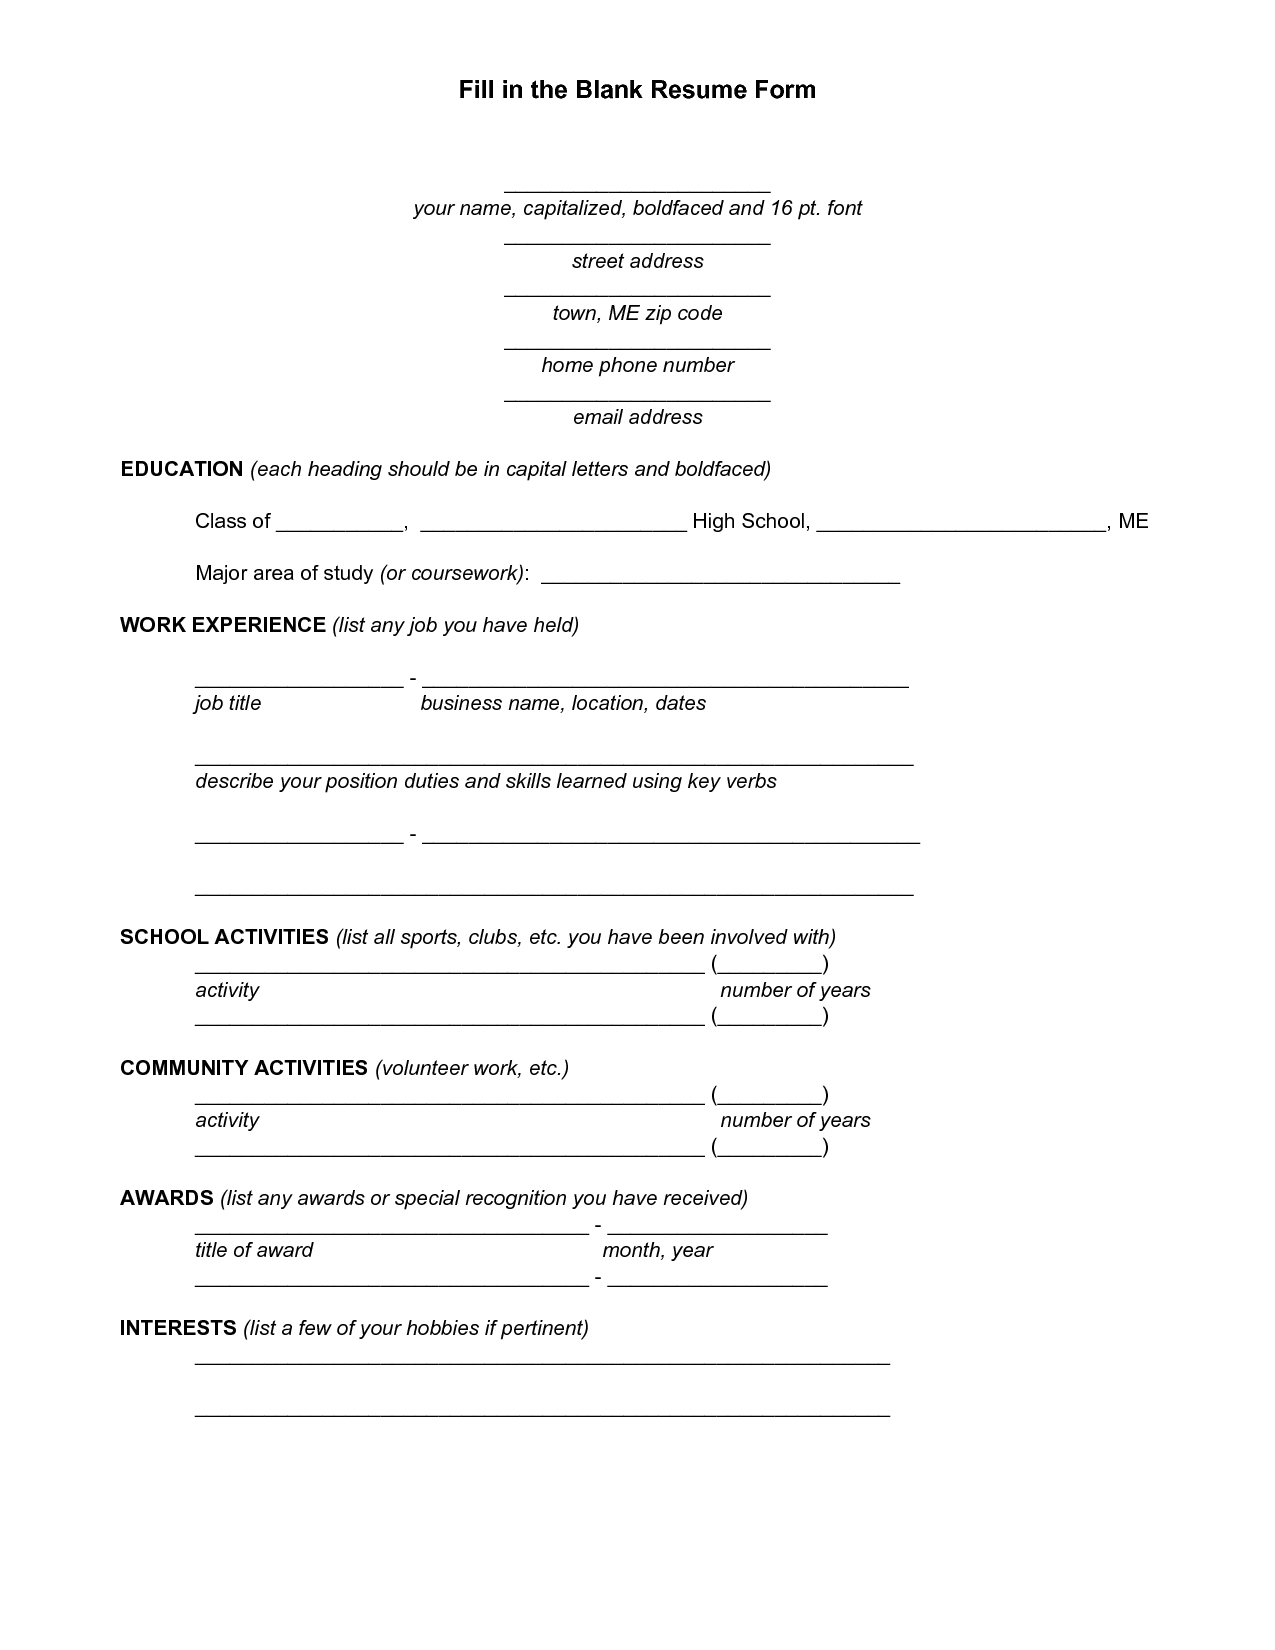 Free Printable Fill In The Blank Resume Templates Unique Template - Free Printable Fill In The Blank Resume Templates